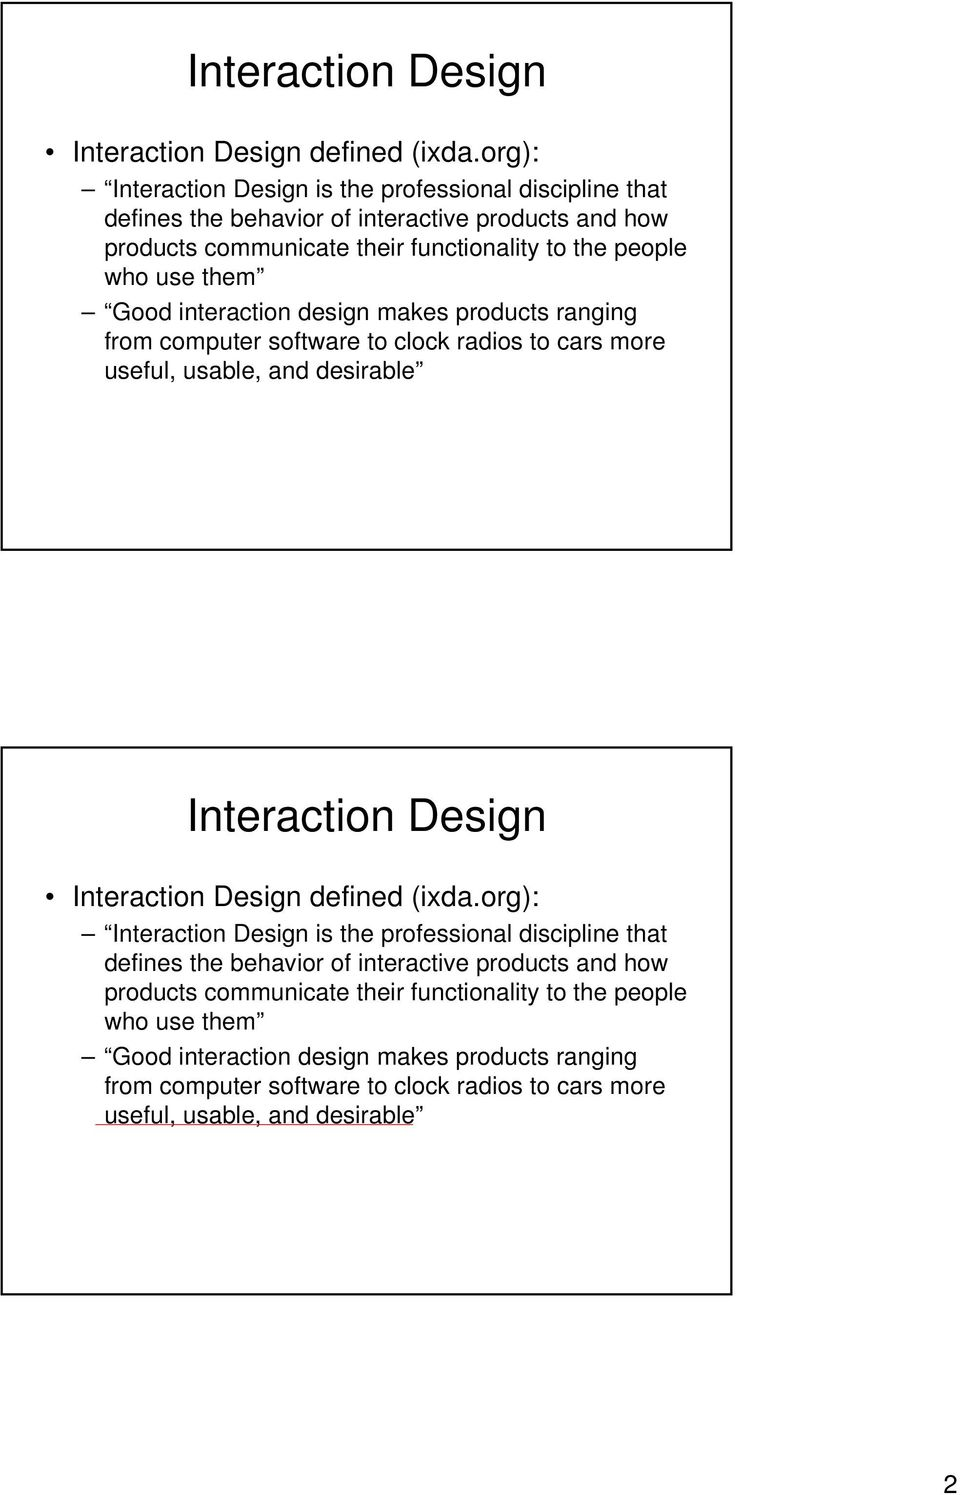 Good interaction design makes products ranging from computer software to clock radios to cars more useful, usable, and desirable  Good interaction design makes products ranging from